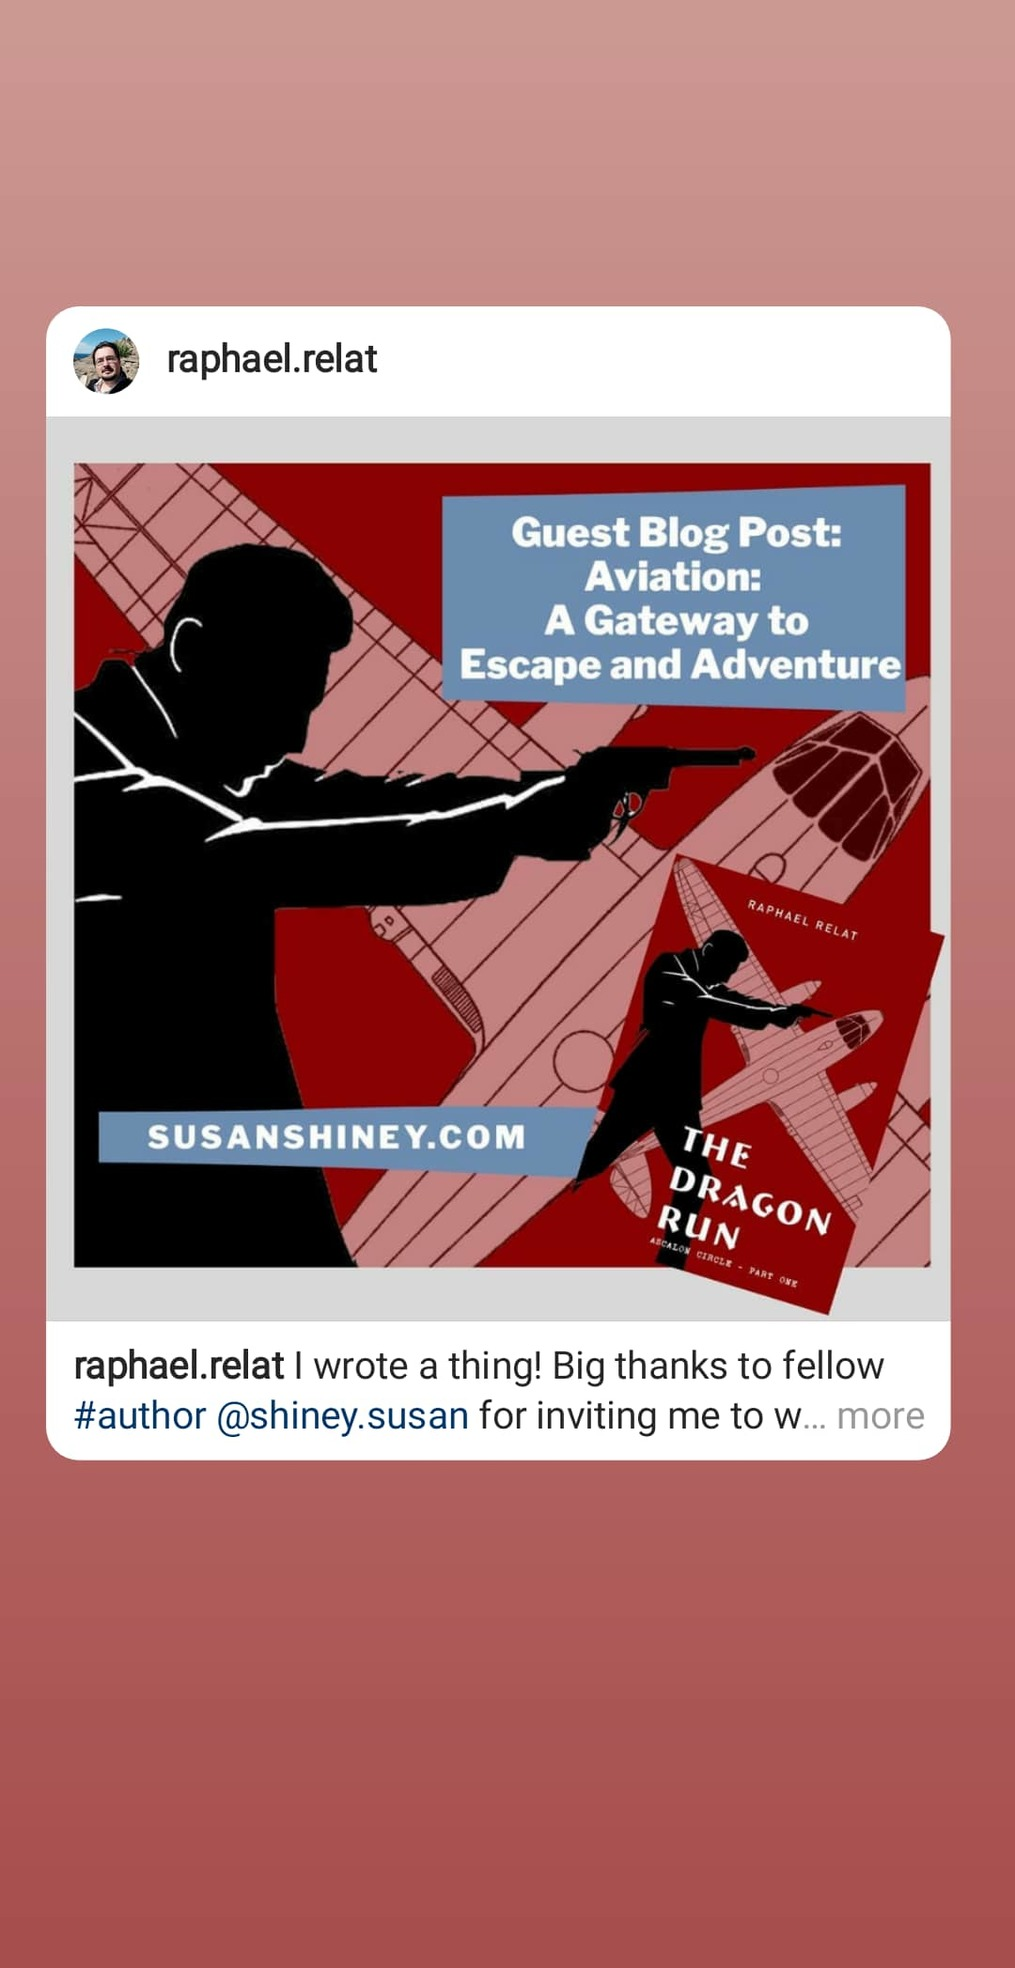 Typical-Trends-Instagram-Stories-for-Writers-susan-shiney-sharing-a-blog-post-announcement-from-another-author-instagram-story-ideas-for-authors